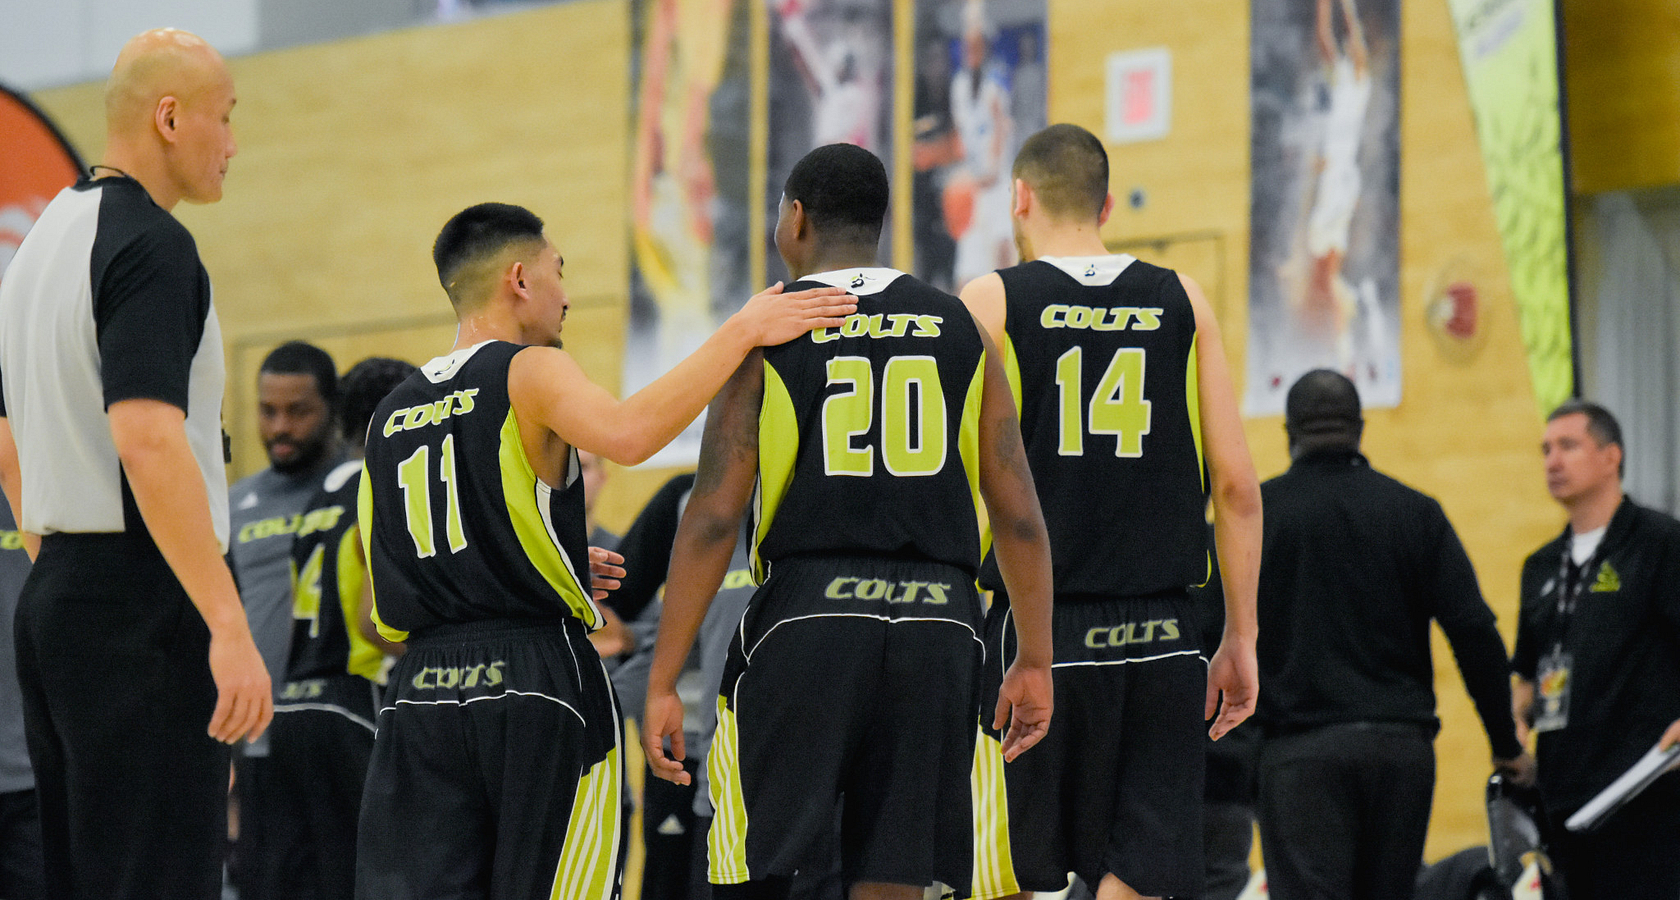 centennial college basketball players patting each other on the back during a game